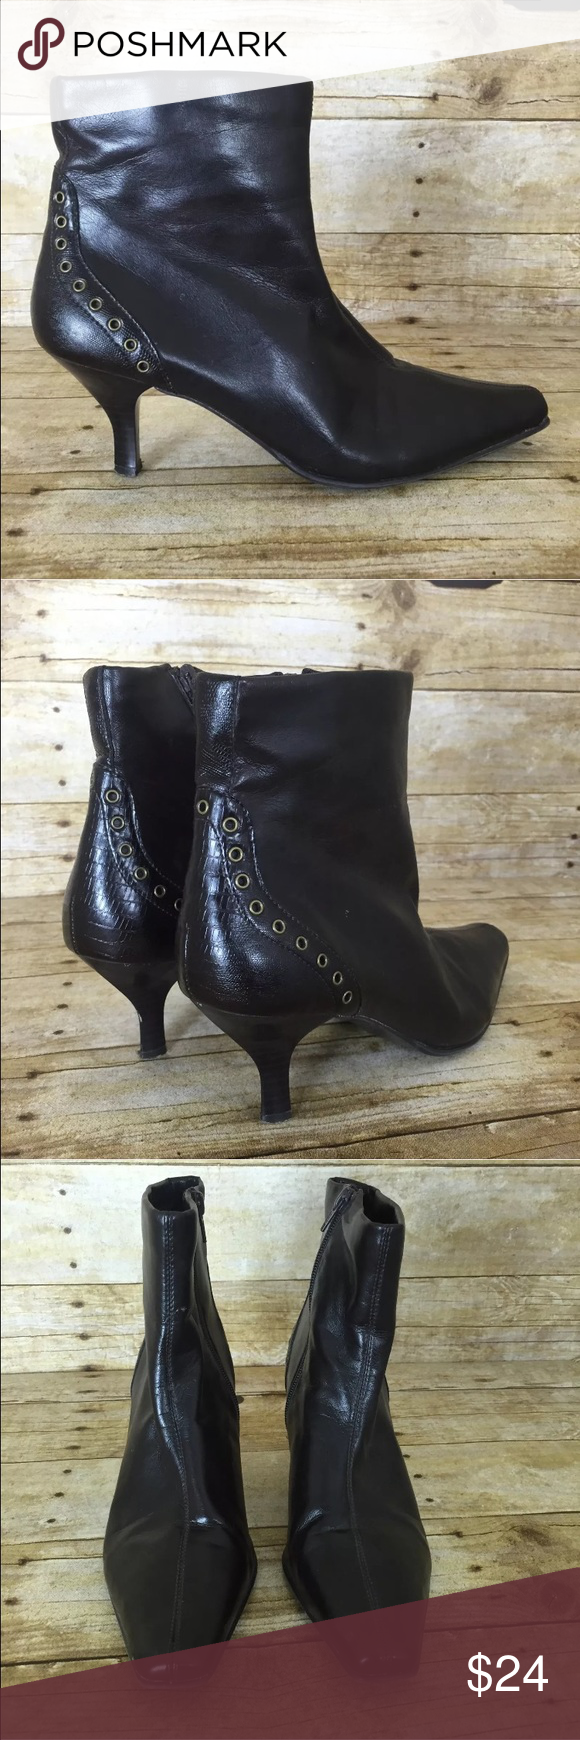 6d8f764d836f3 Liz Claiborne Flex Lucent Brown Ankle Boot Liz Claiborne Flex Lucent Brown Ankle  Boot Side Zipper